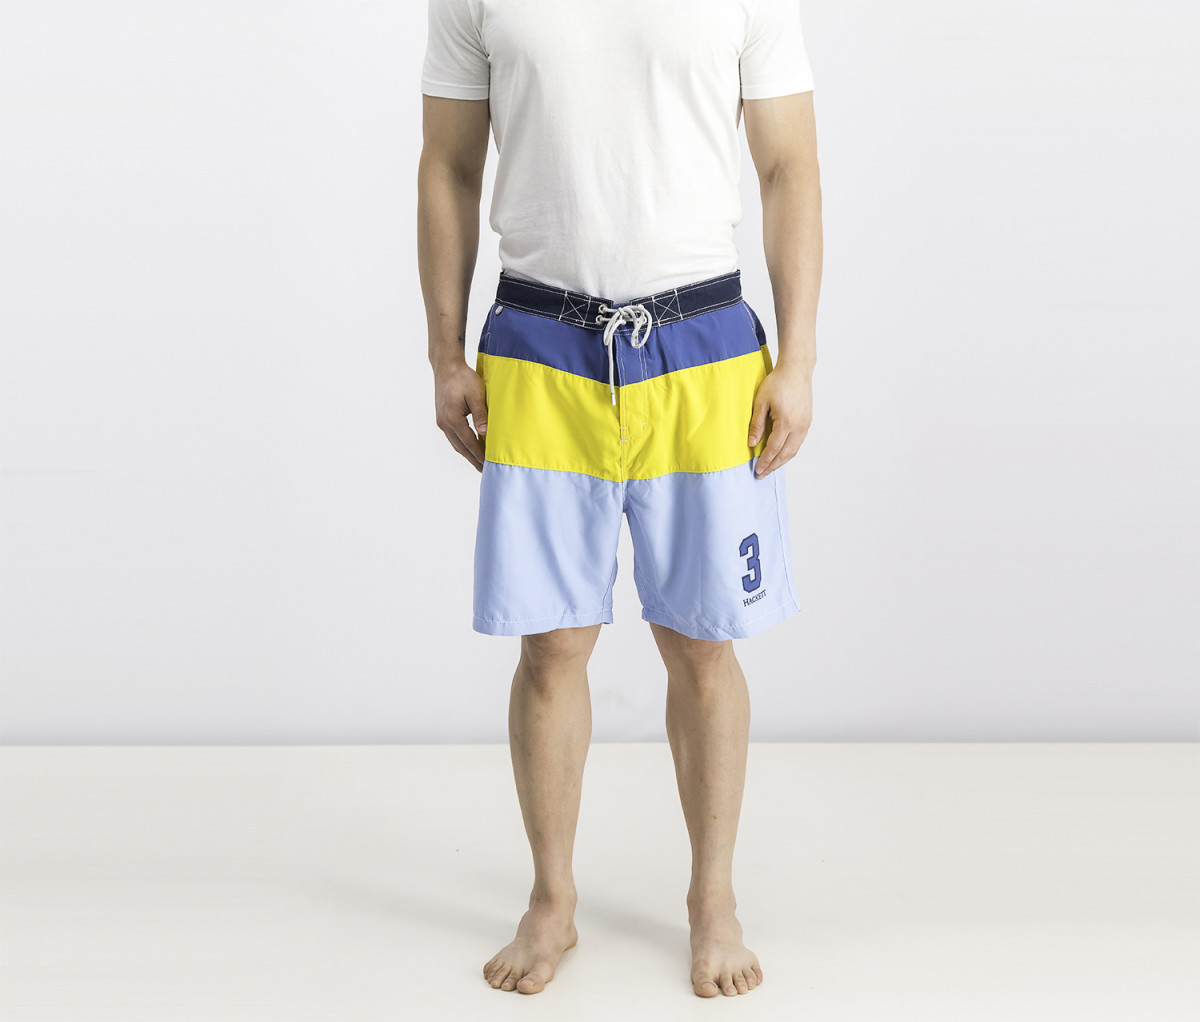 Hackett Mens Beach Polo Surf Short  Yellow/Navy/Blue